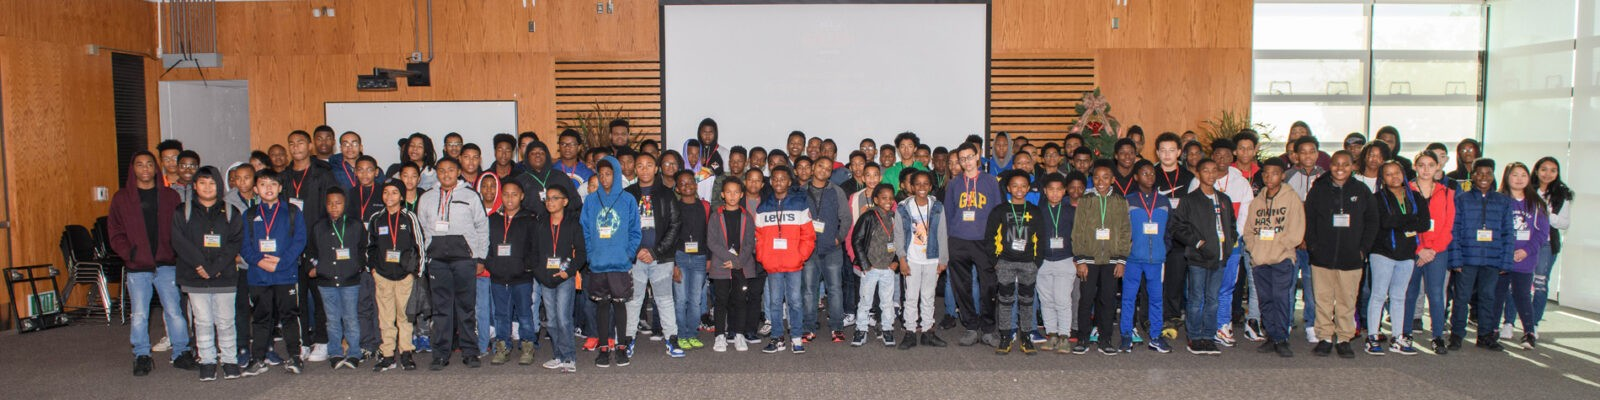 Brothers Code 2019 Highlights